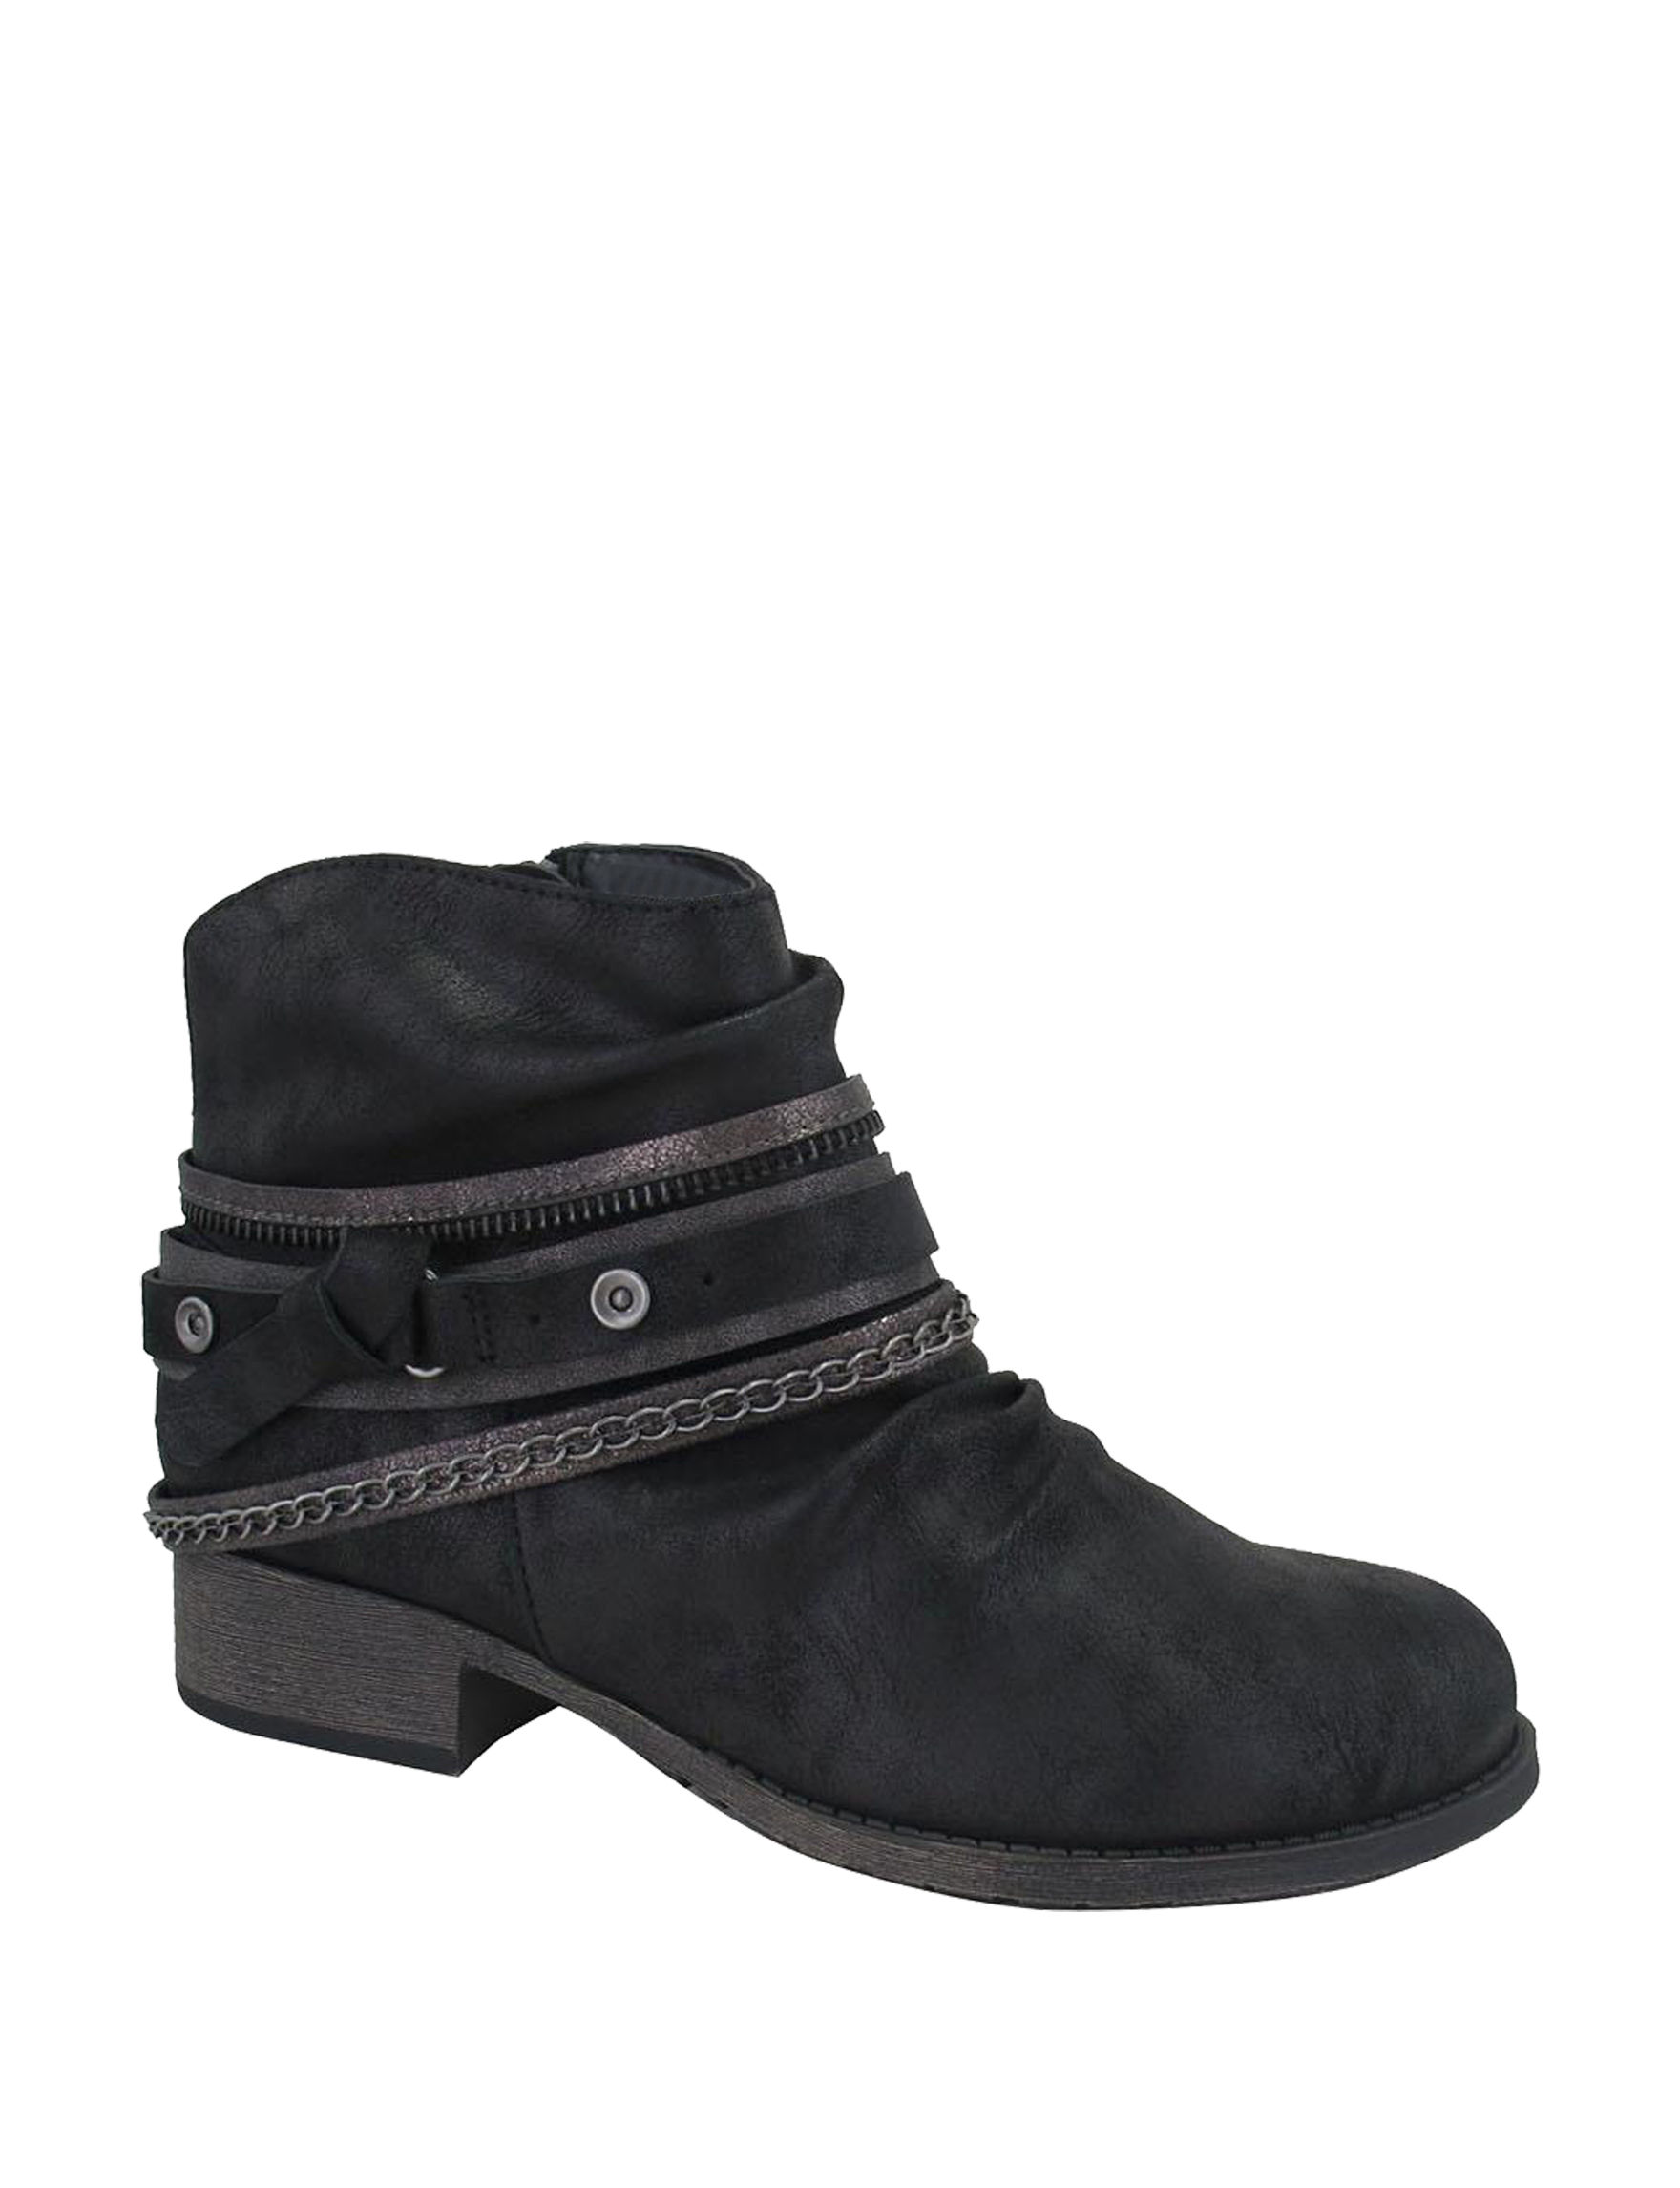 Jellypop Black Ankle Boots & Booties